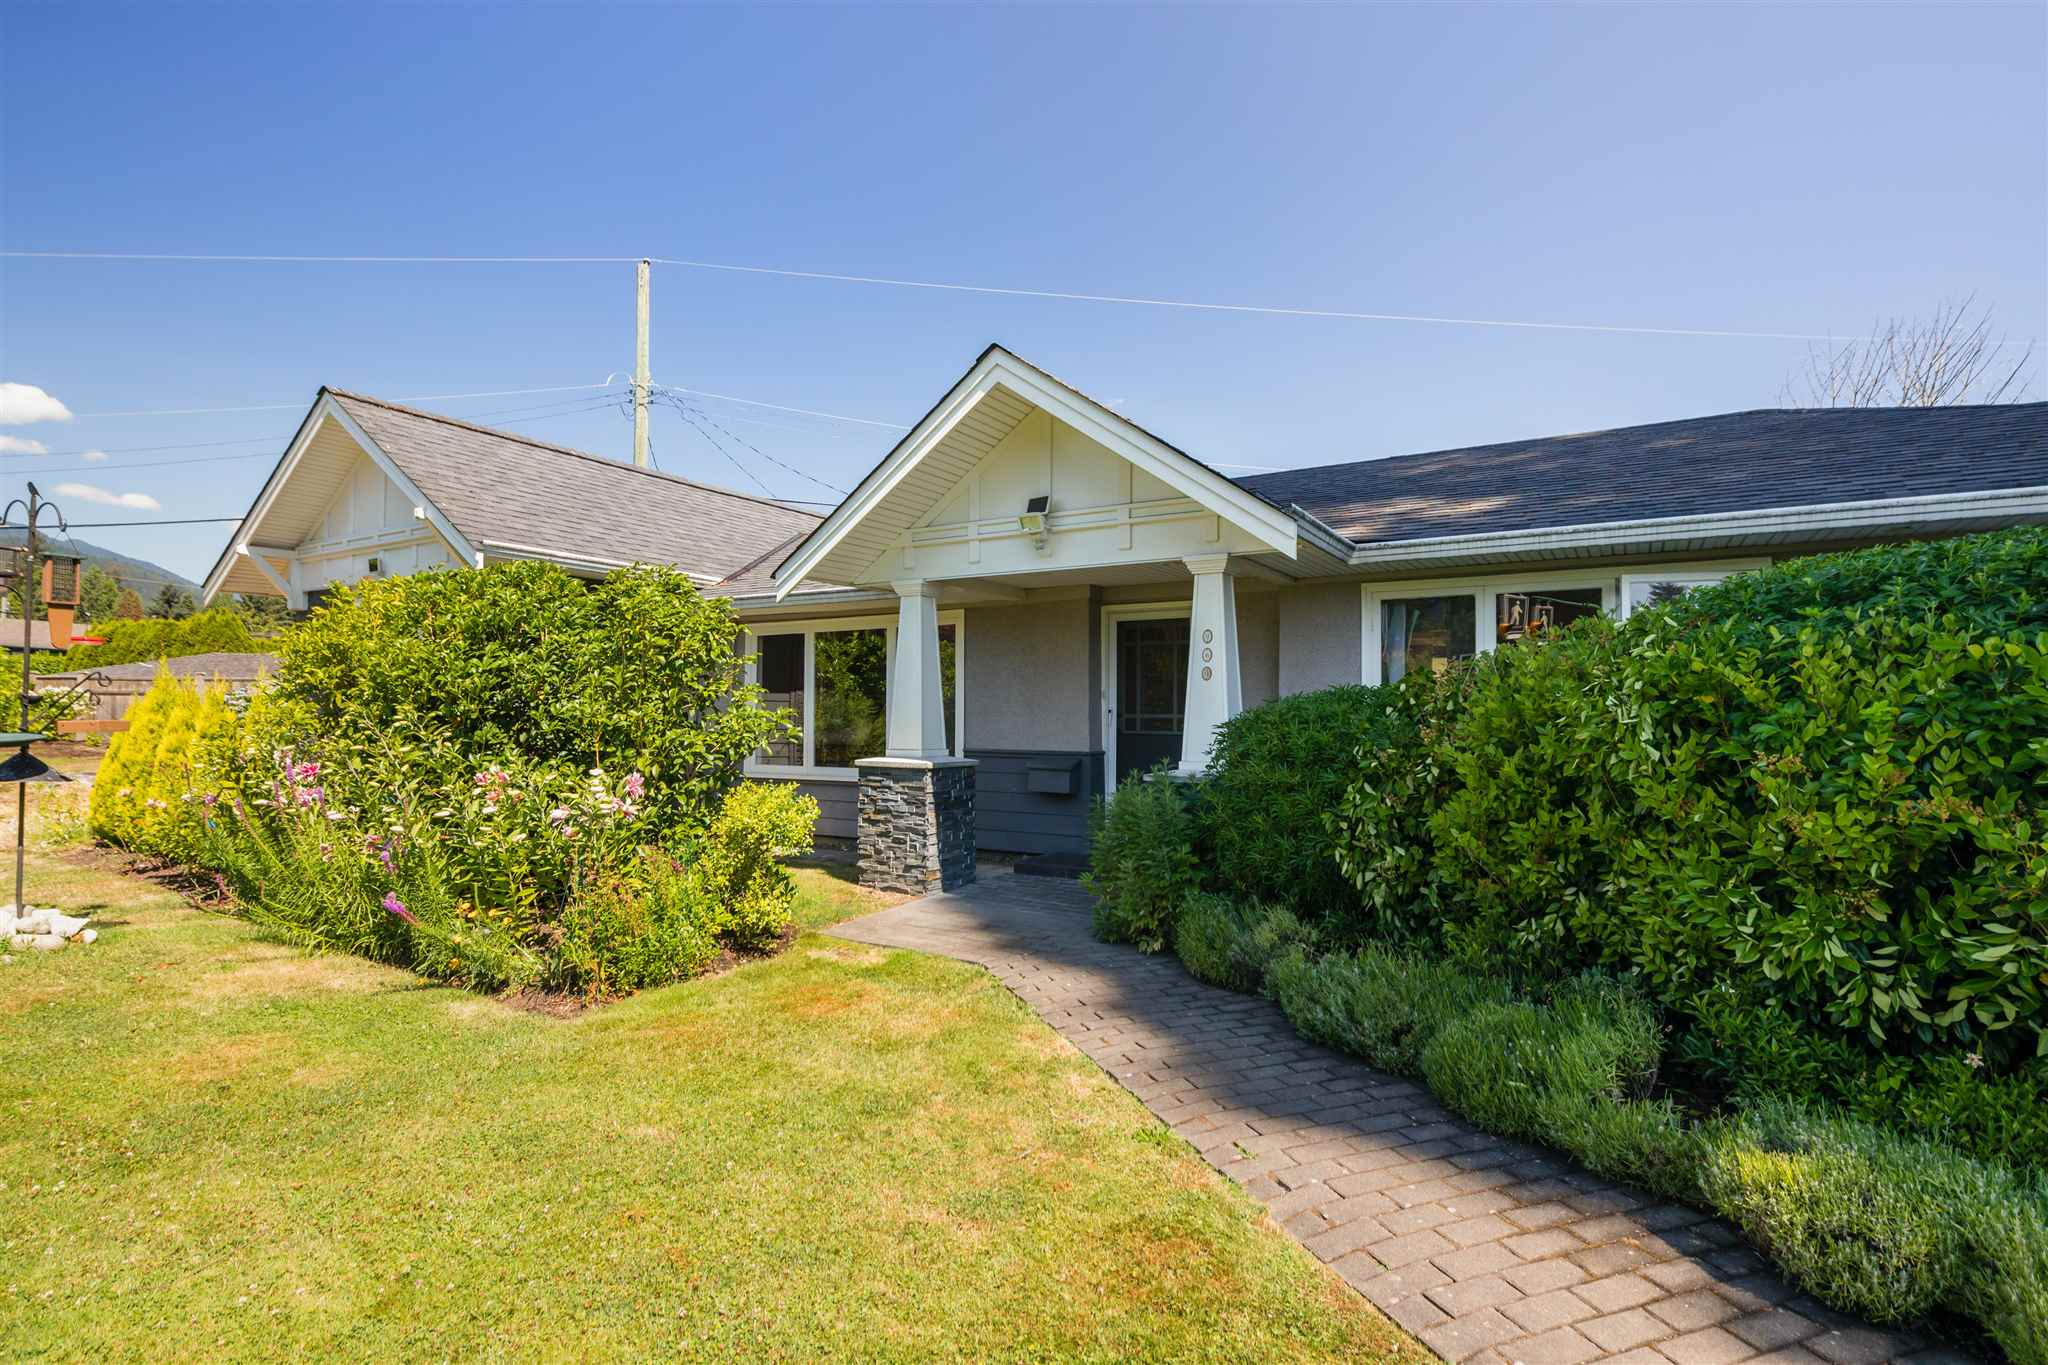 960 W QUEENS ROAD - Edgemont House/Single Family for sale, 2 Bedrooms (R2623308) - #1